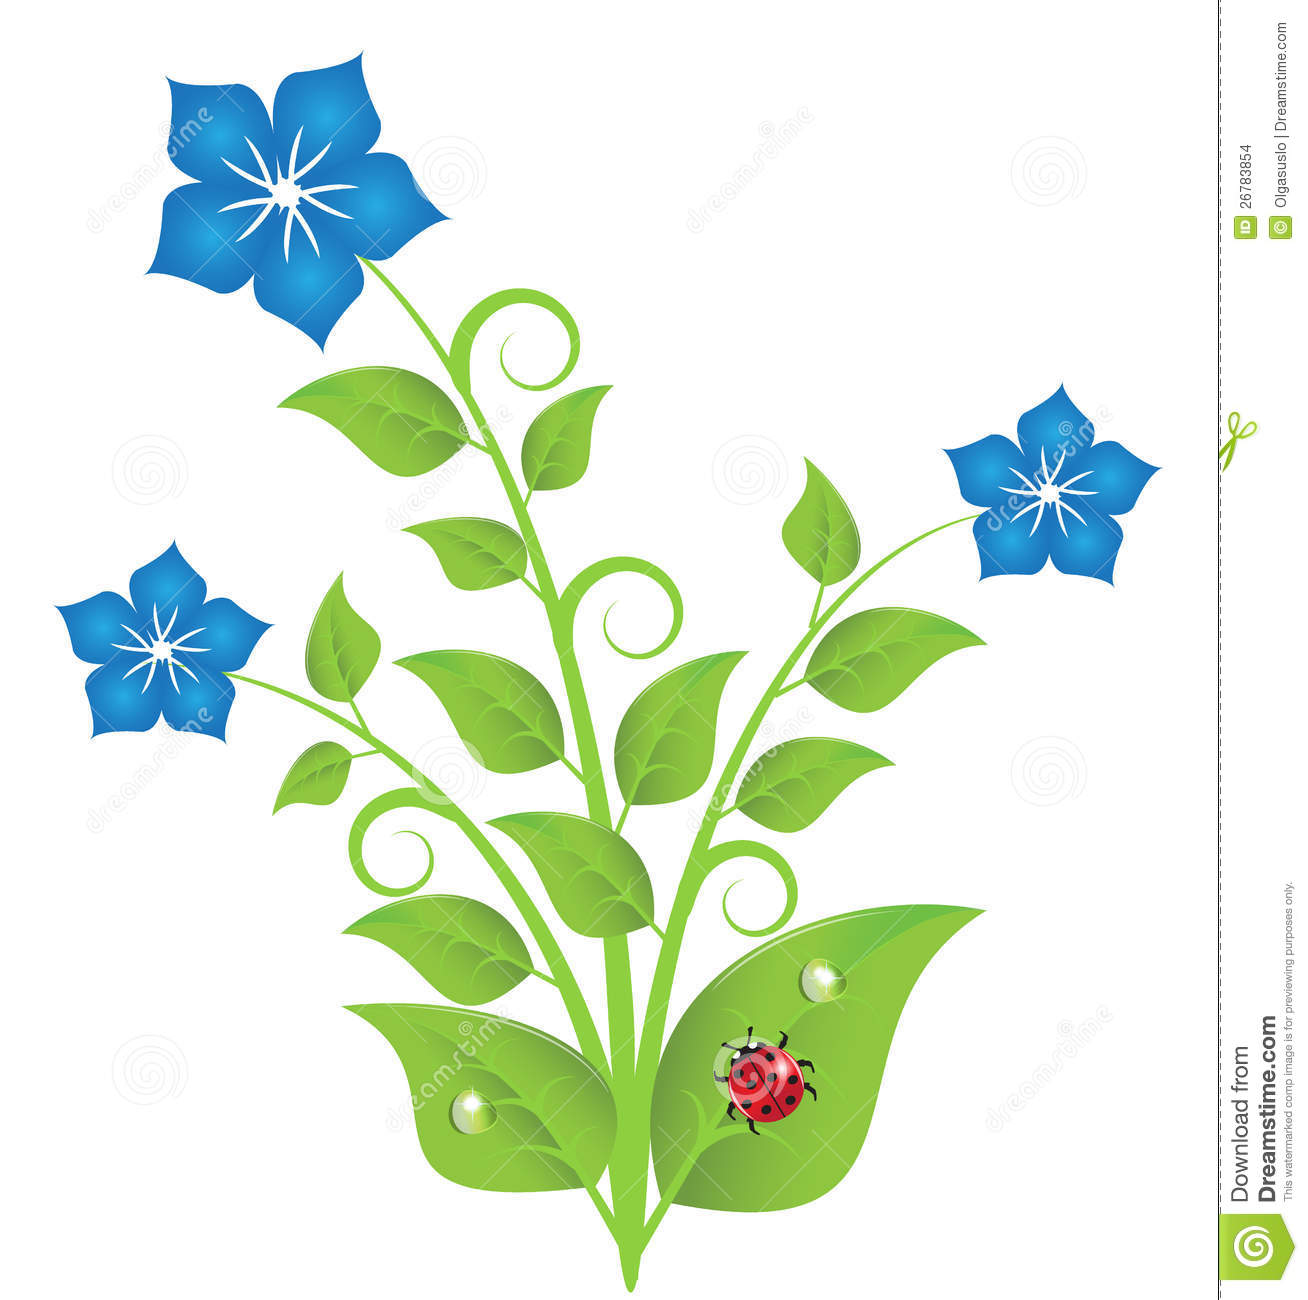 Blue Flowers With Leaves And Swirls Stock Images - Image: 26783854